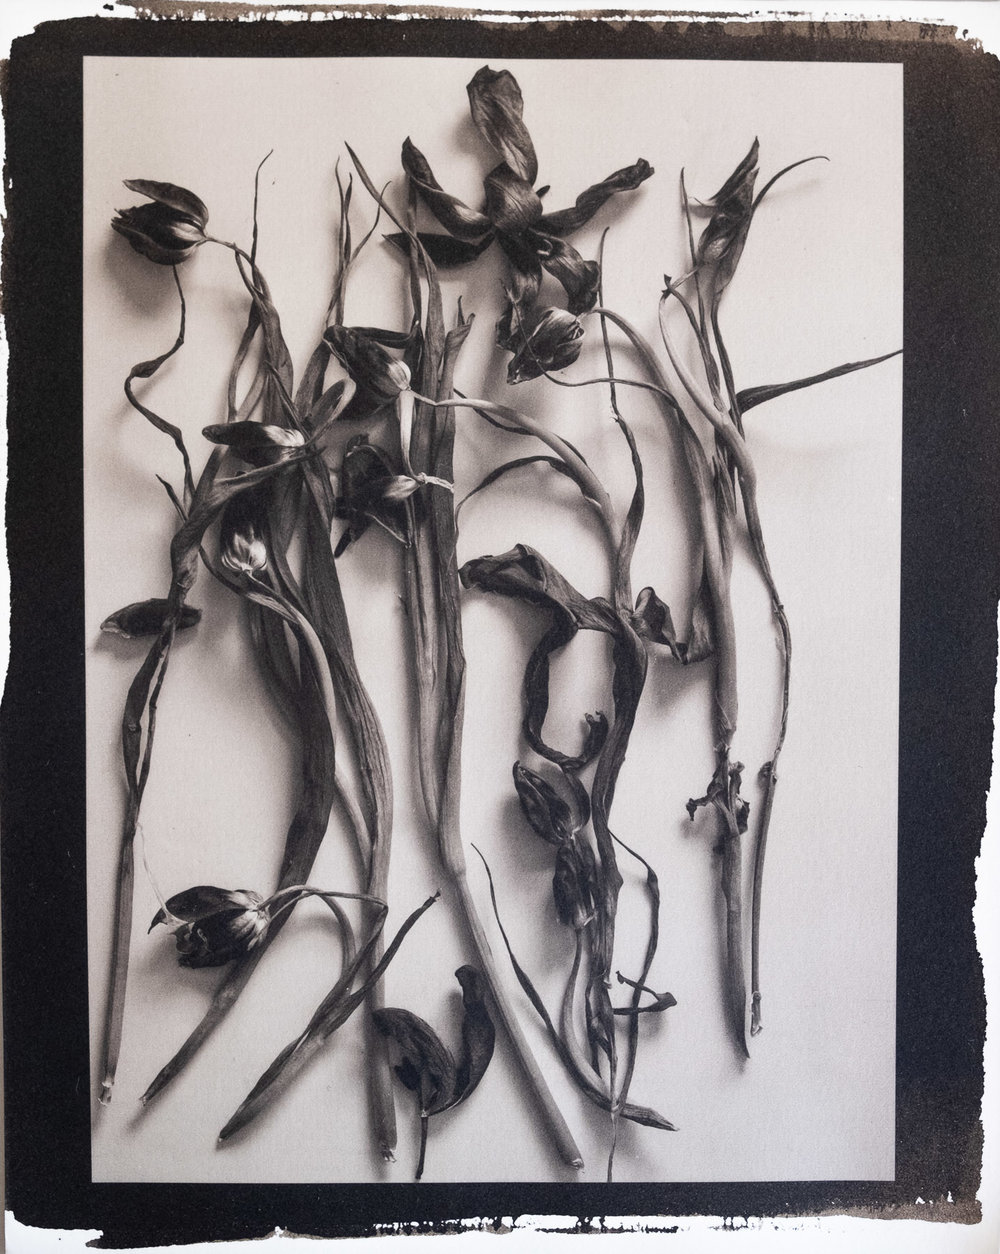 Tulipomania - Platinum Print #flowers #tulips #platinumprint